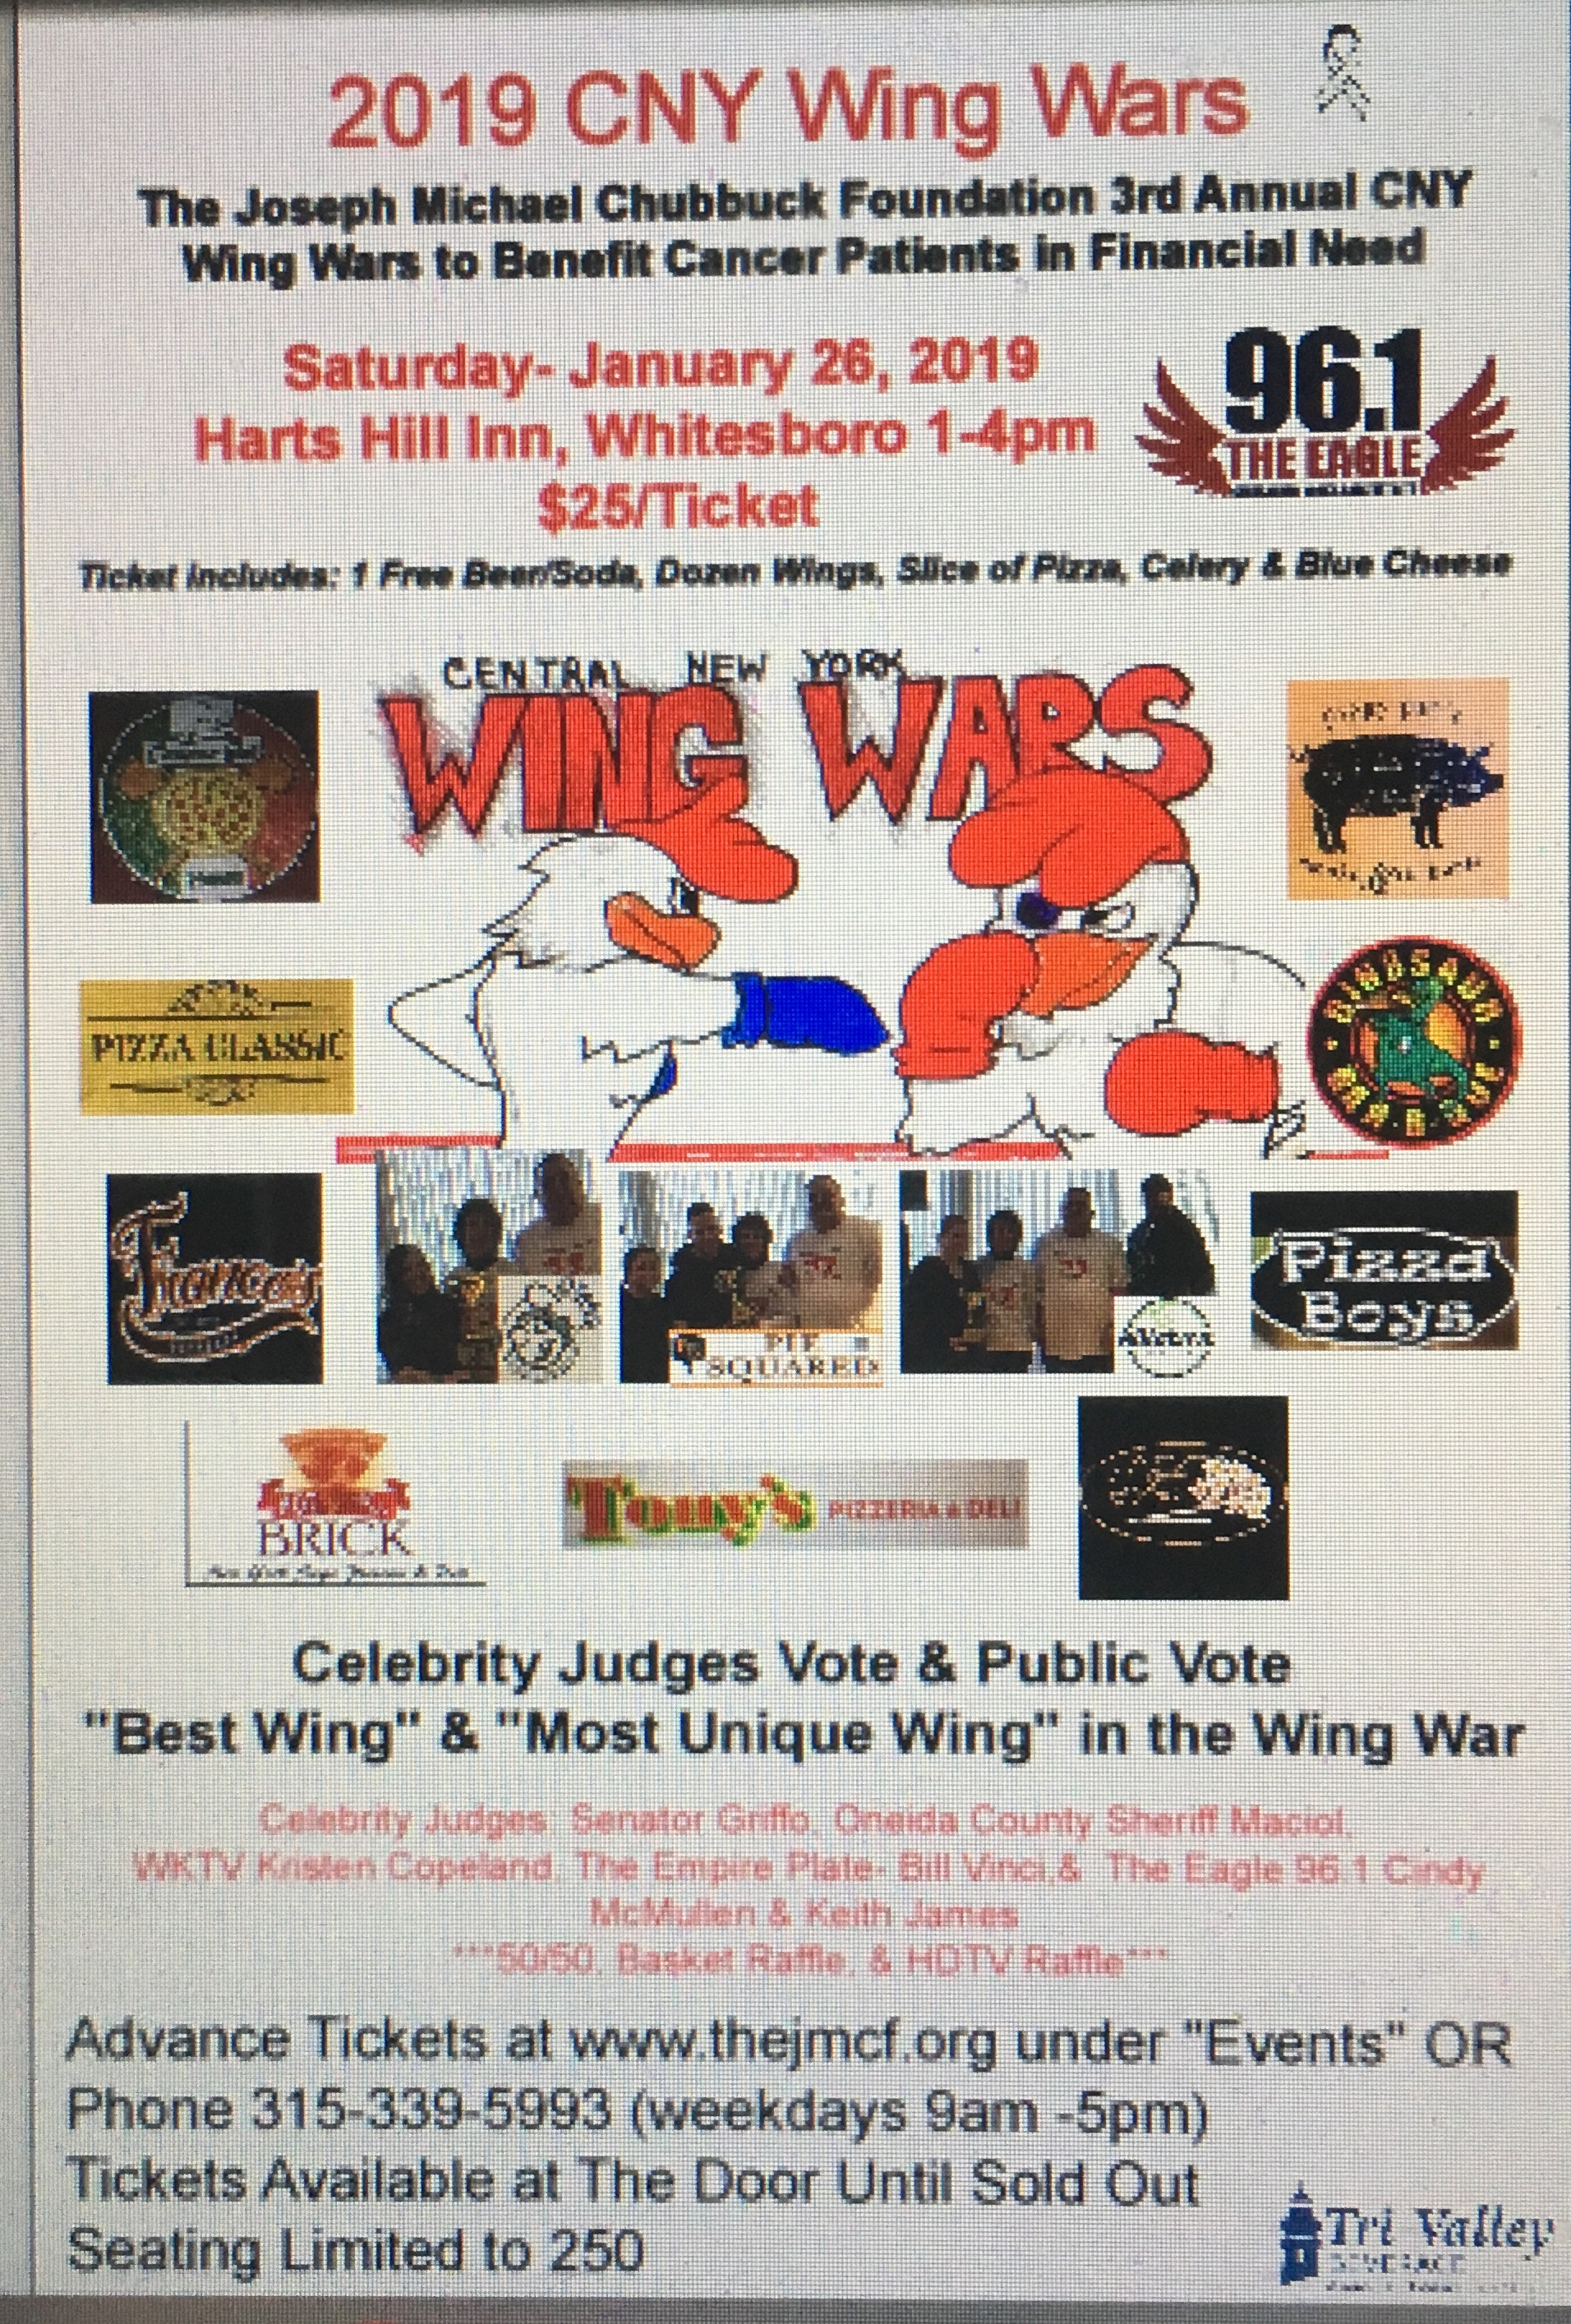 CNY Wing Wars -Fundraisers